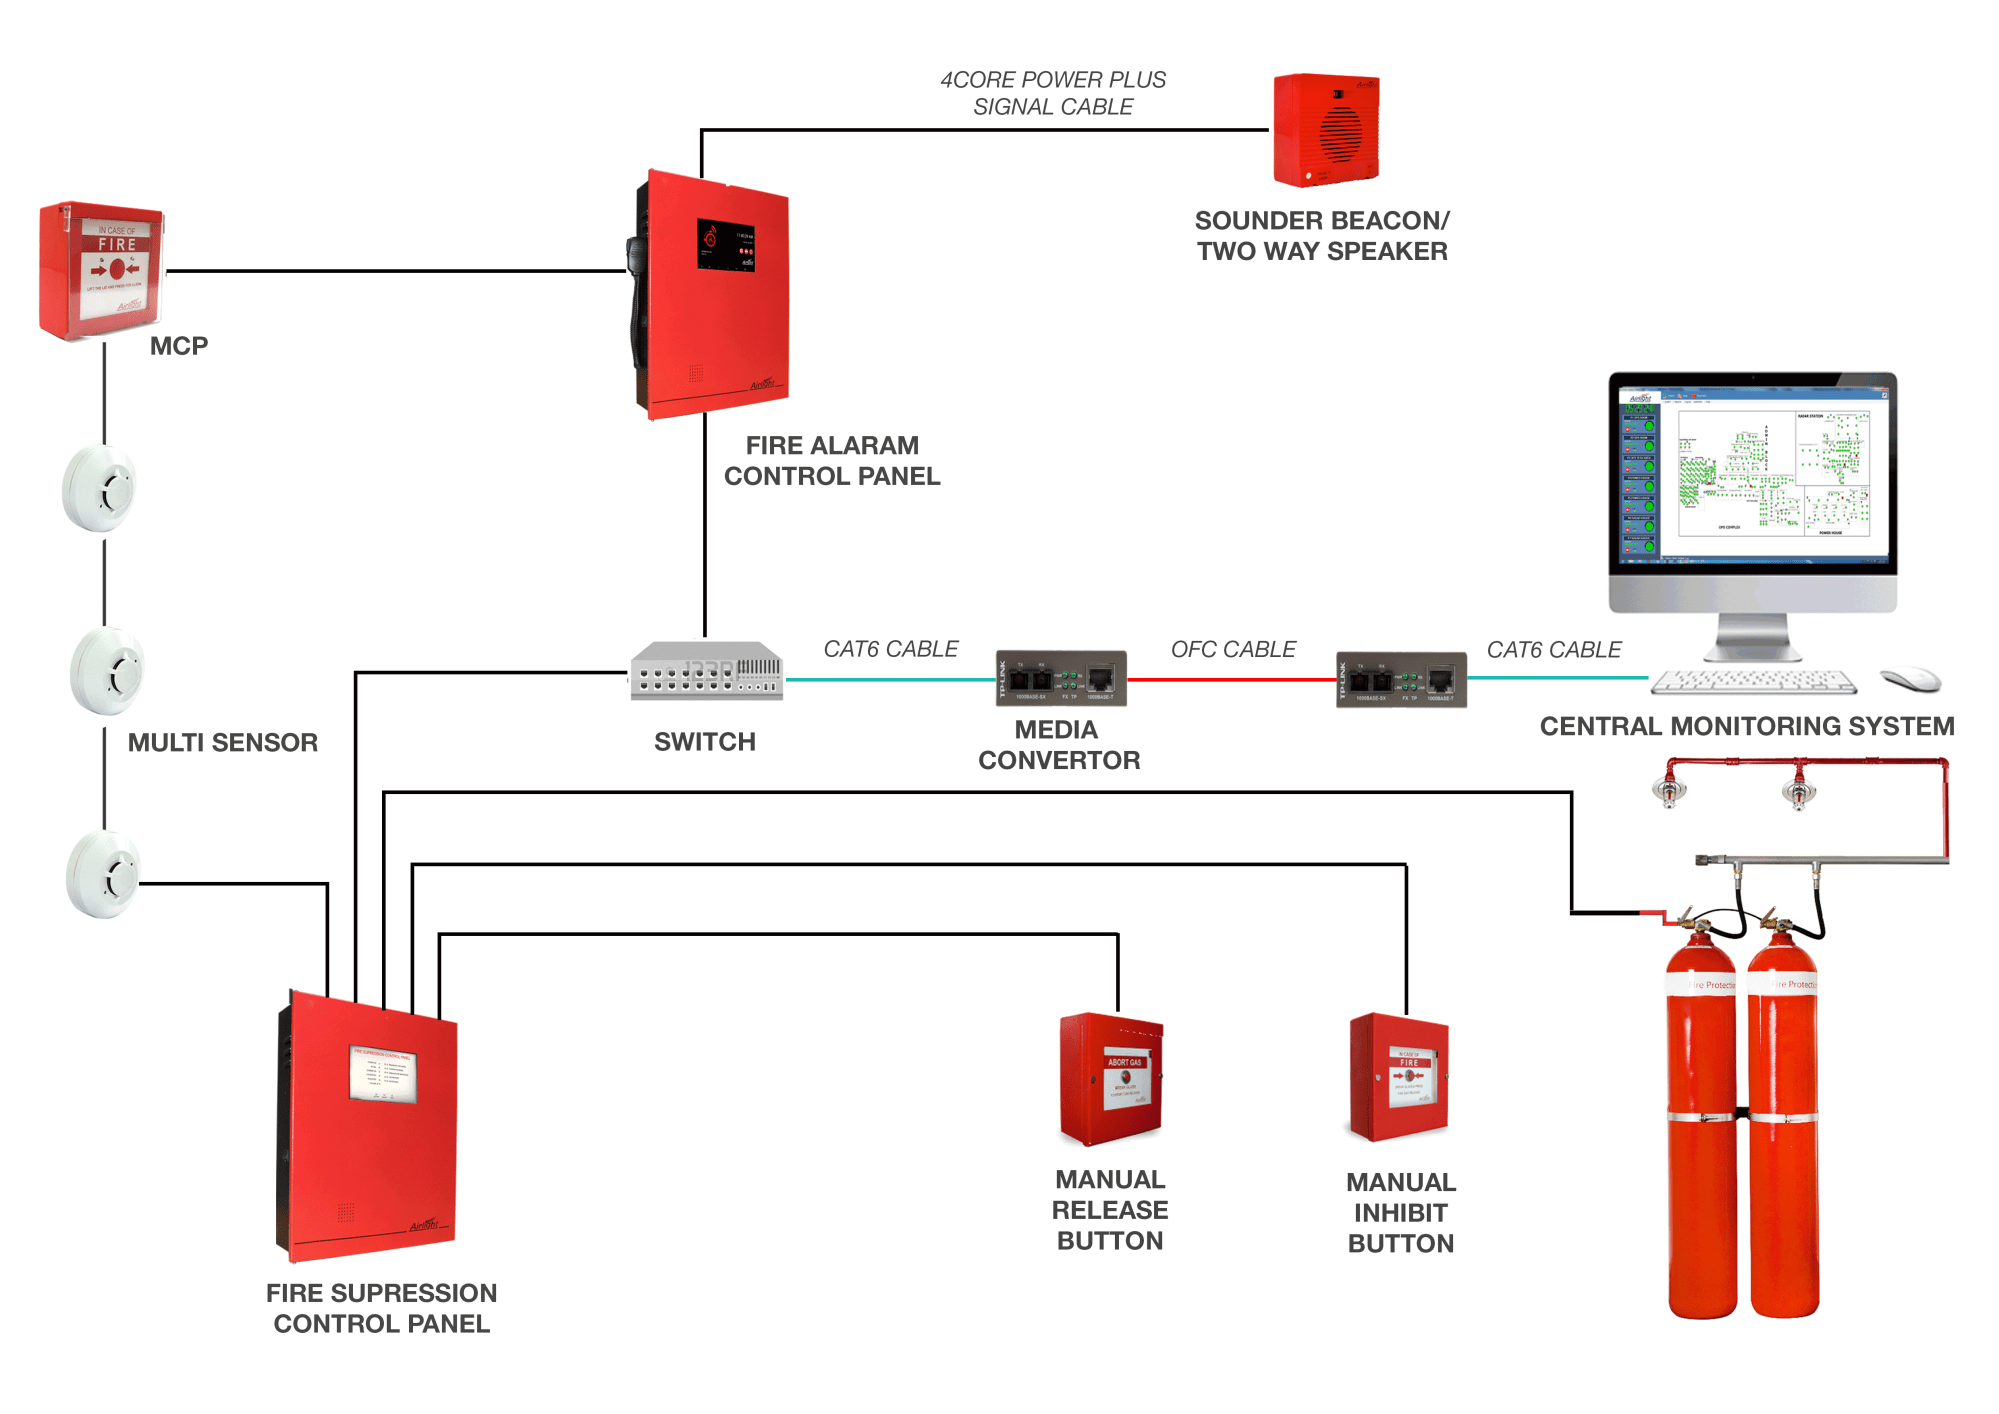 hight resolution of ip based solution from airlight enables the user to monitor the functions fire alarm system from a remote location lan cables are used to network fire